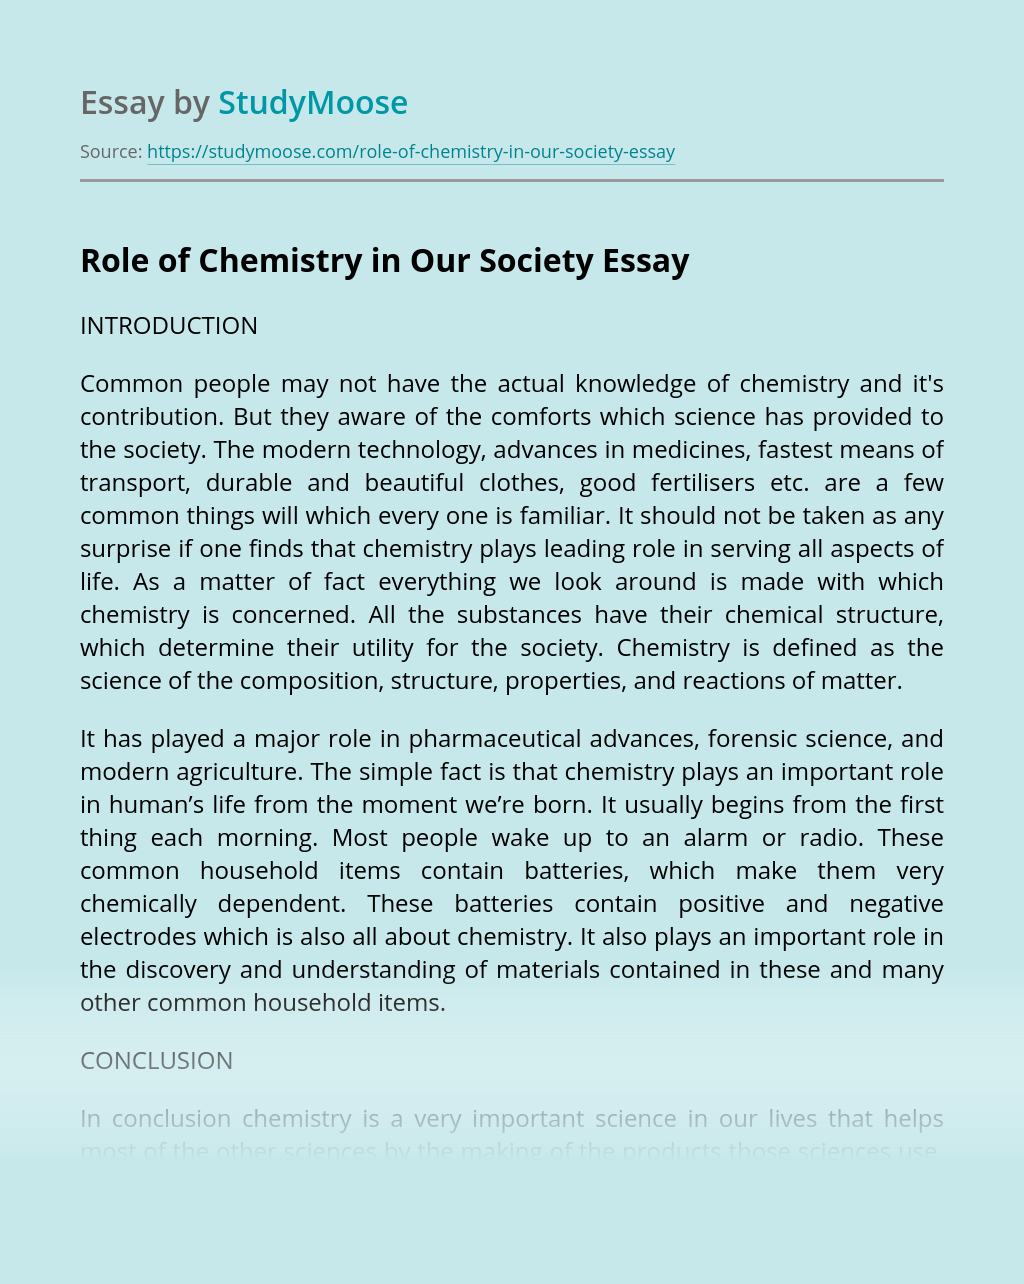 Role of Chemistry in Our Society